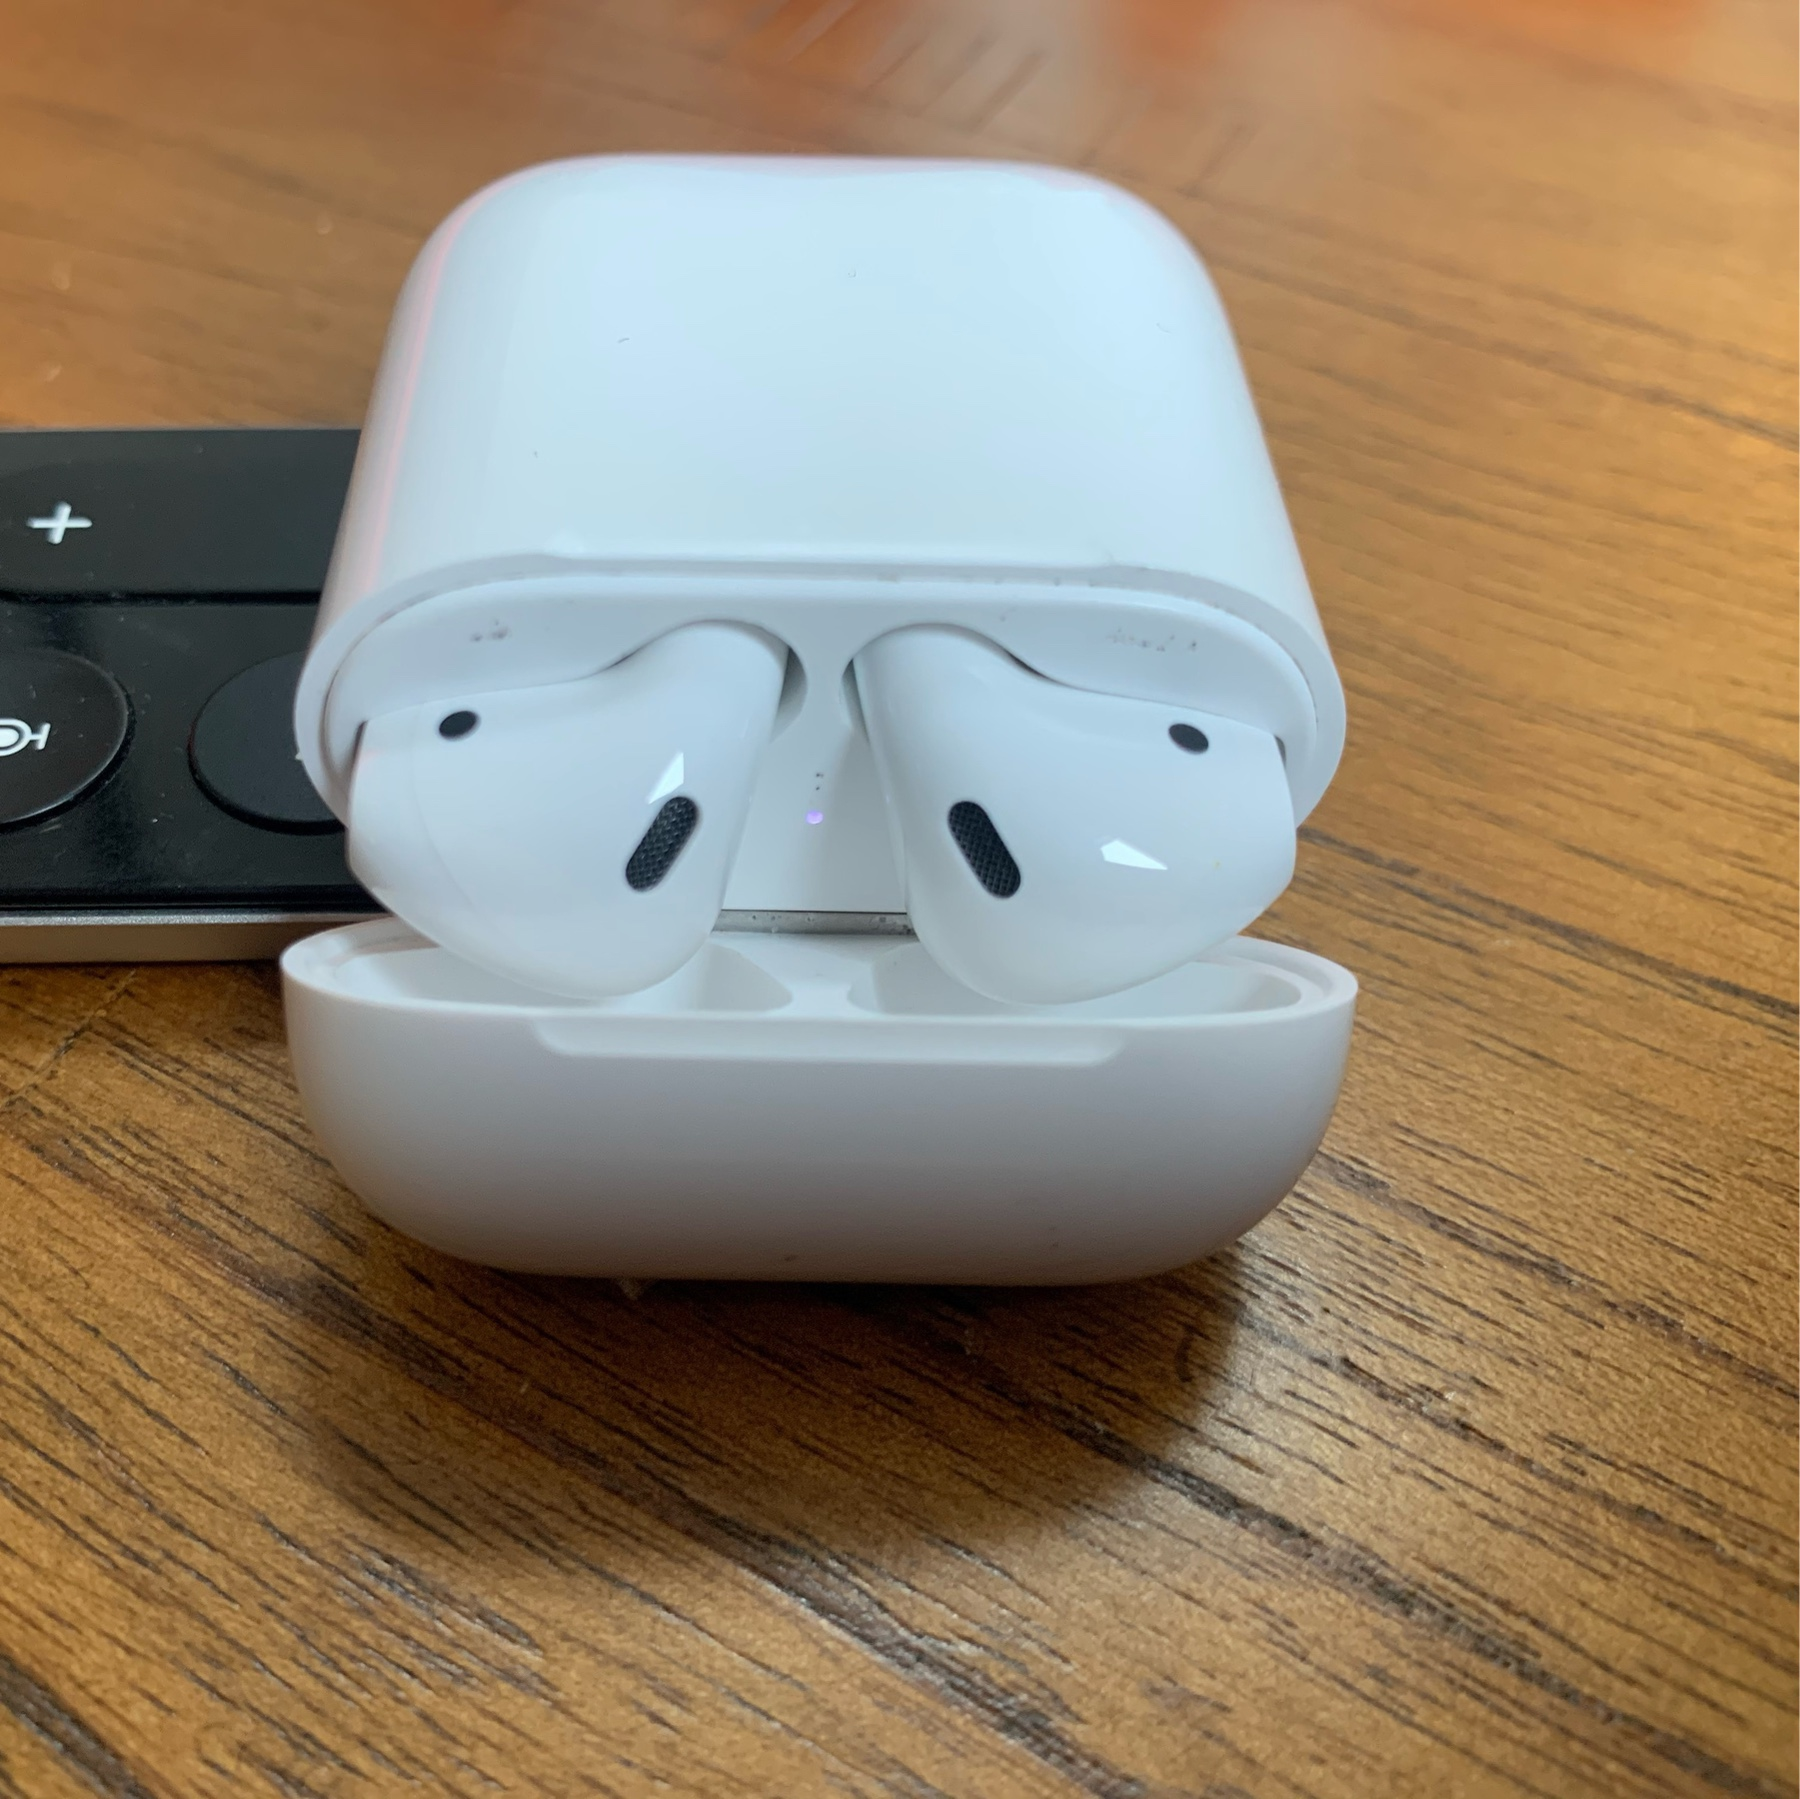 My brand new Airpods (second gen) in my original charging case, sitting open on a wooden table.